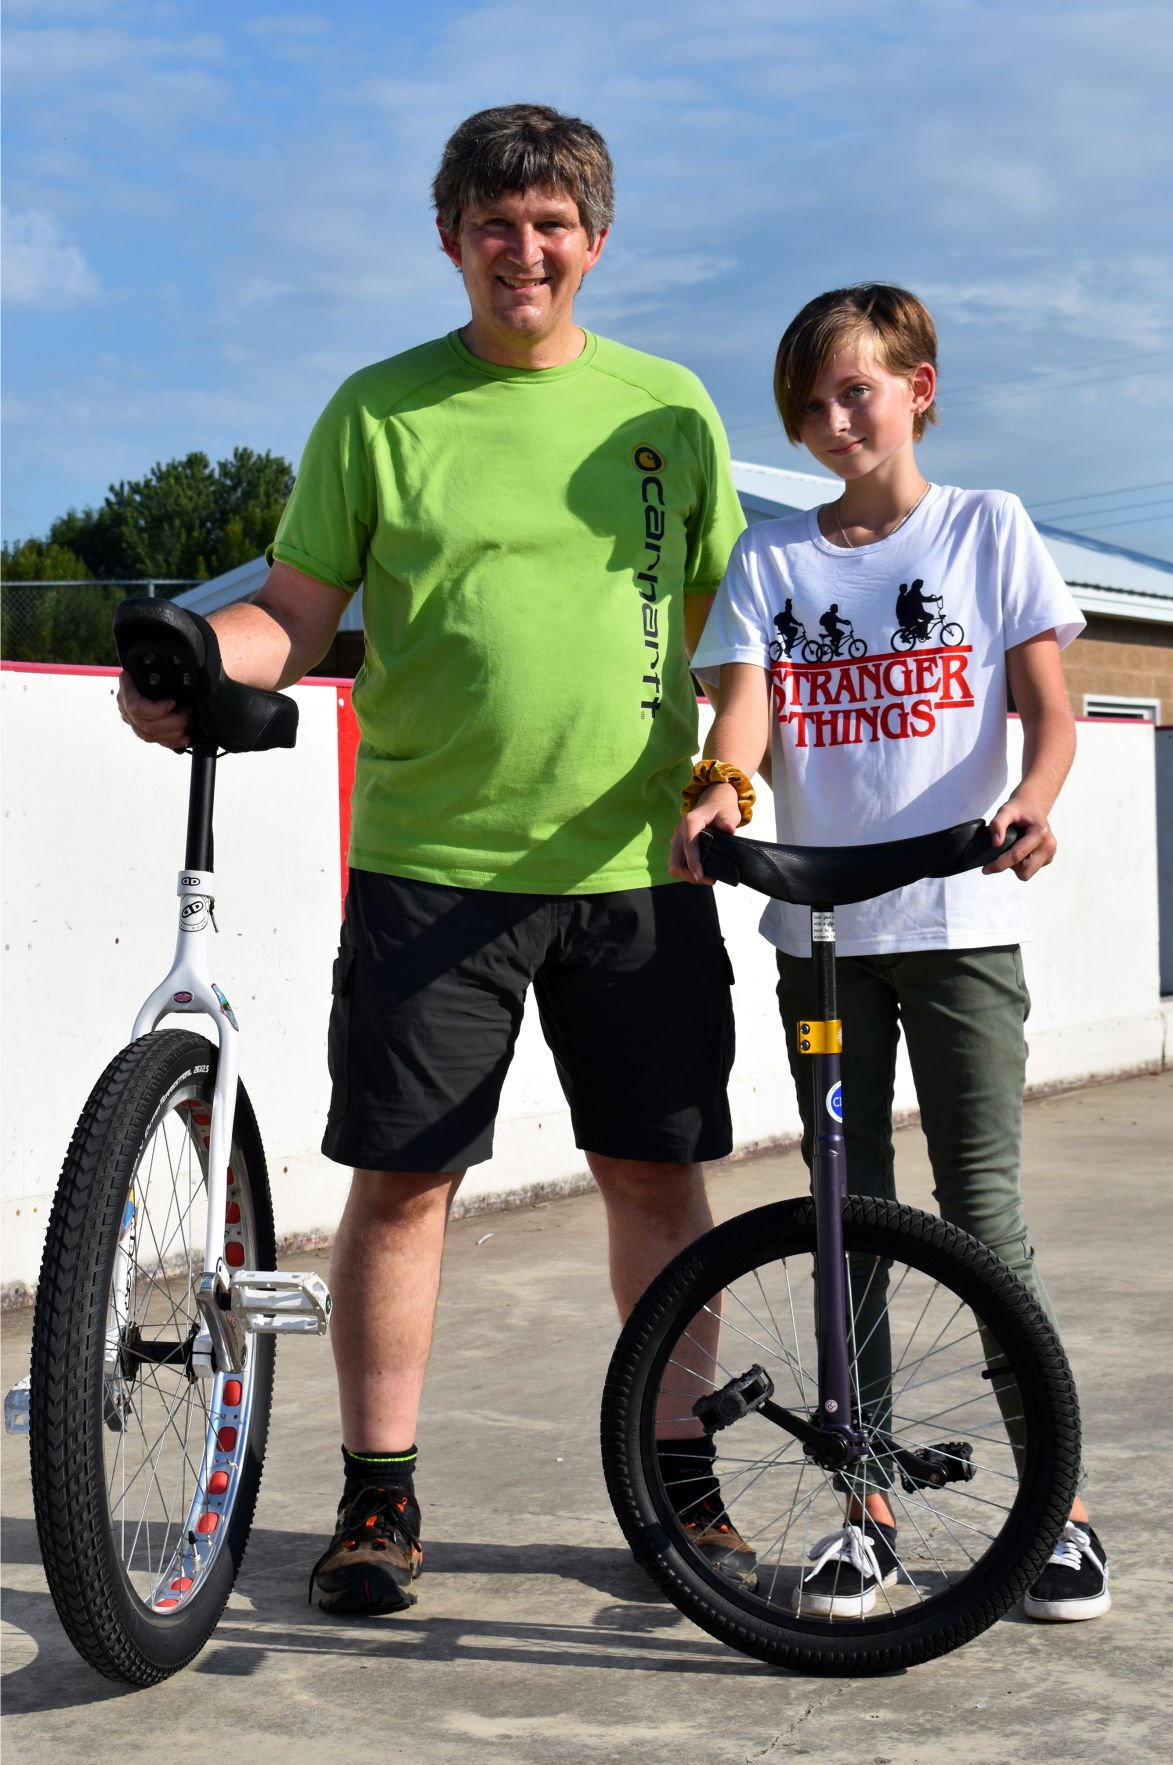 Unicycling duo